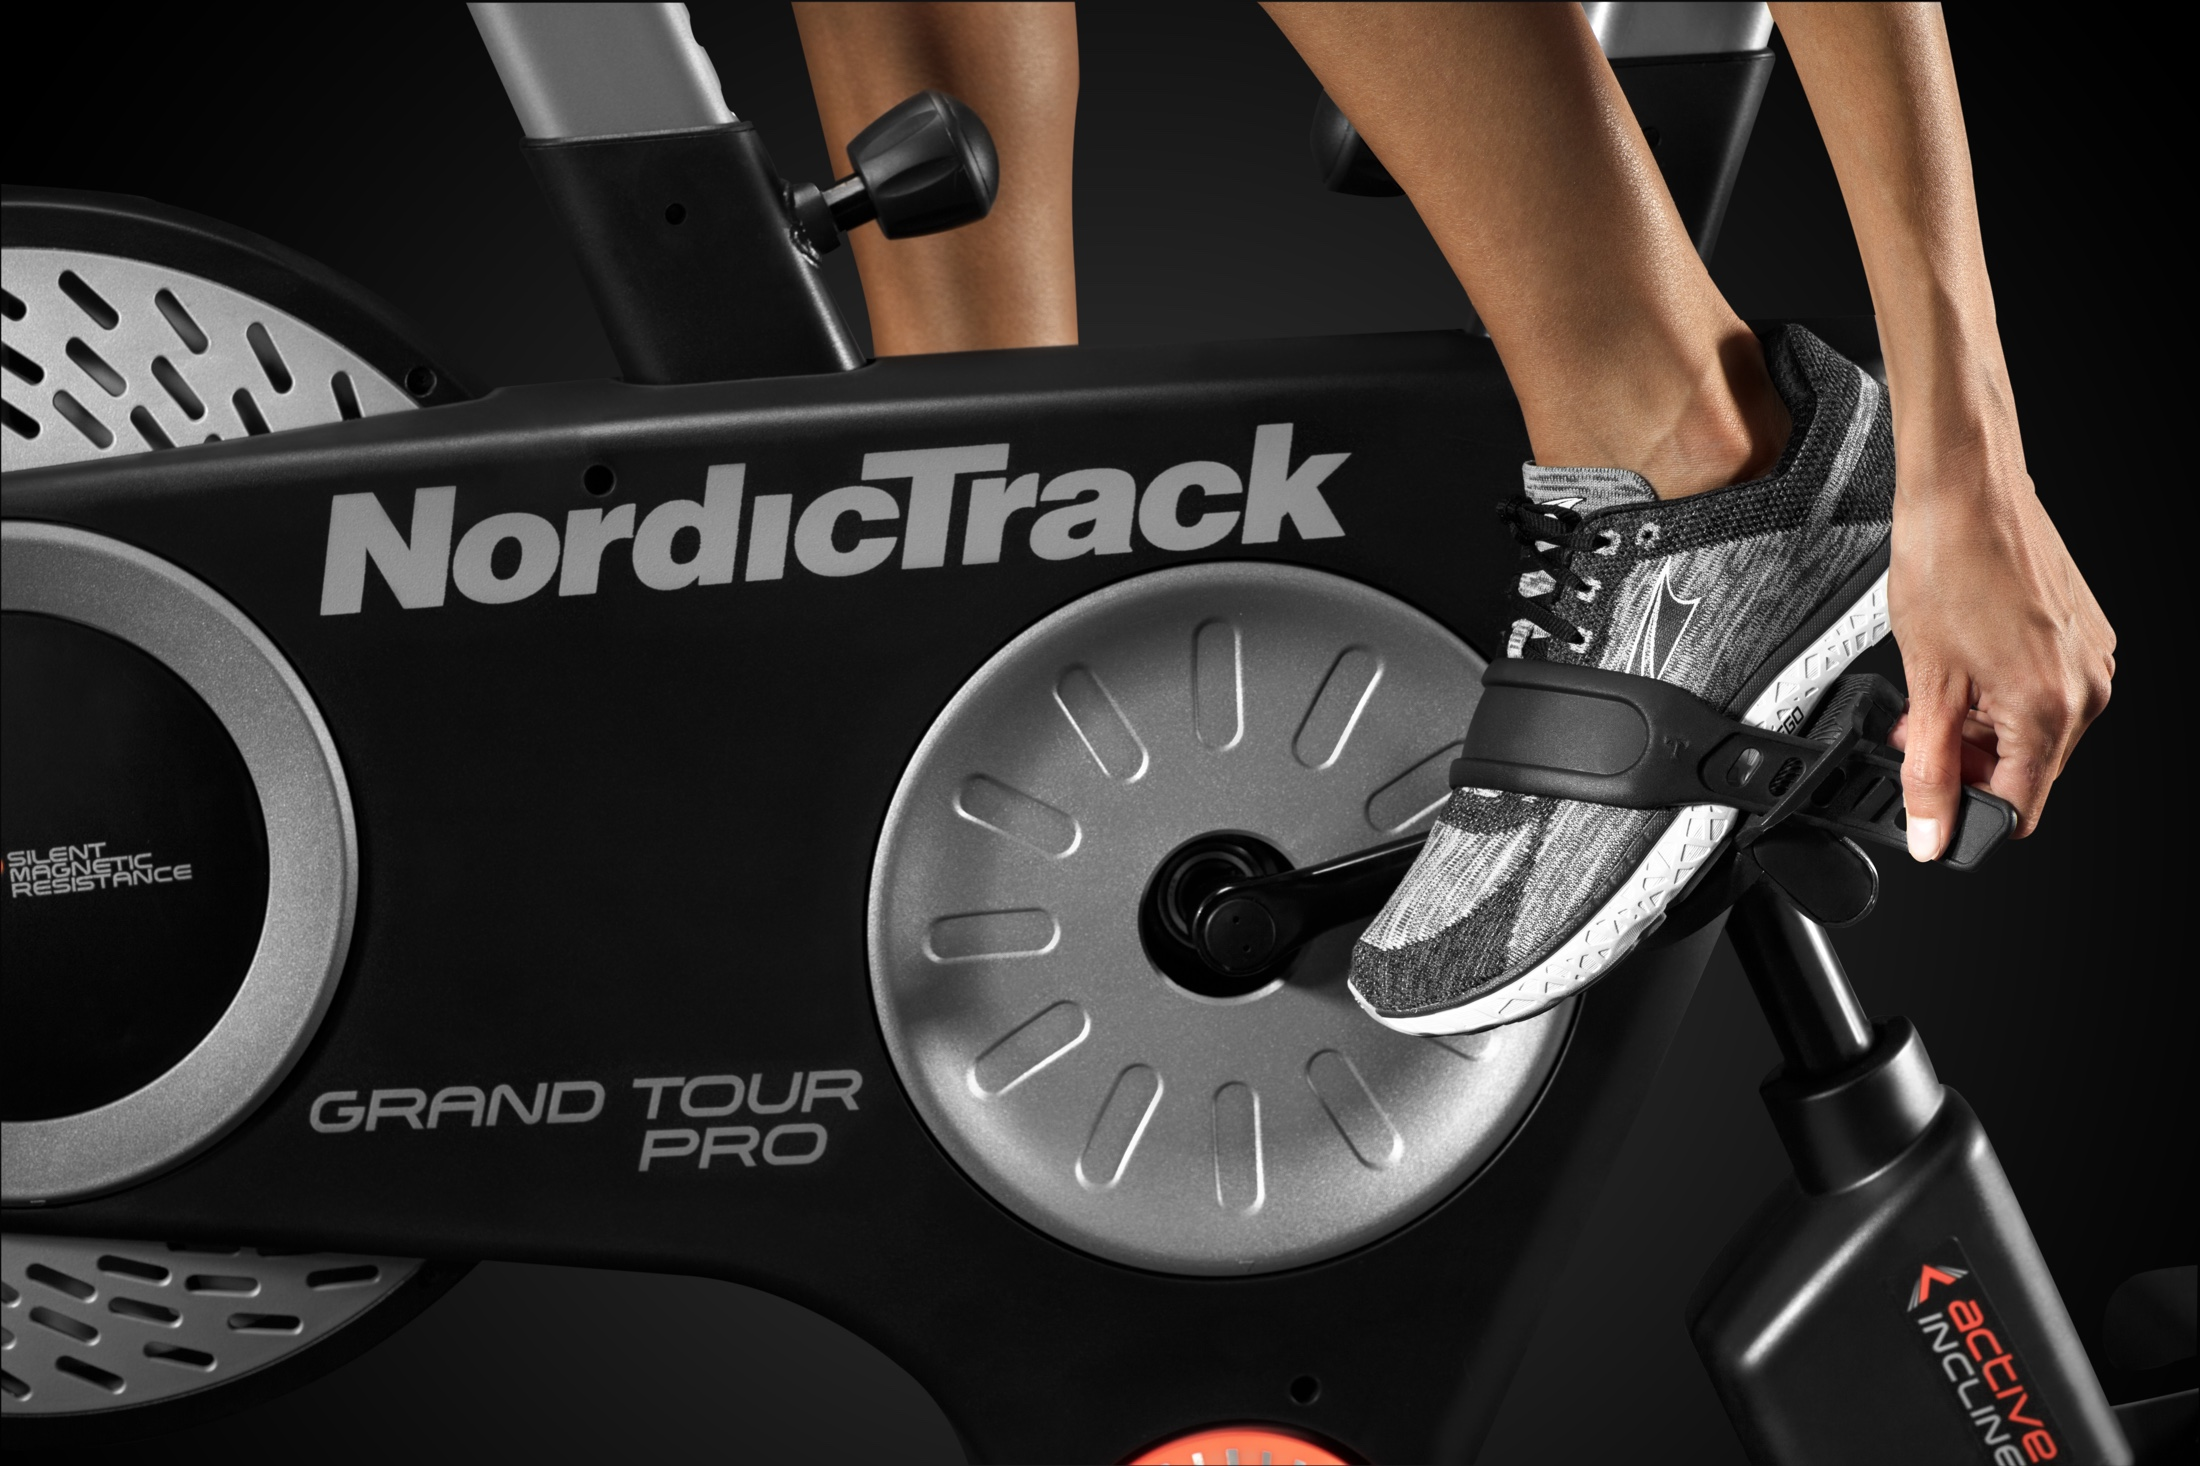 NordicTrack Grand Tour Pro gallery image 7